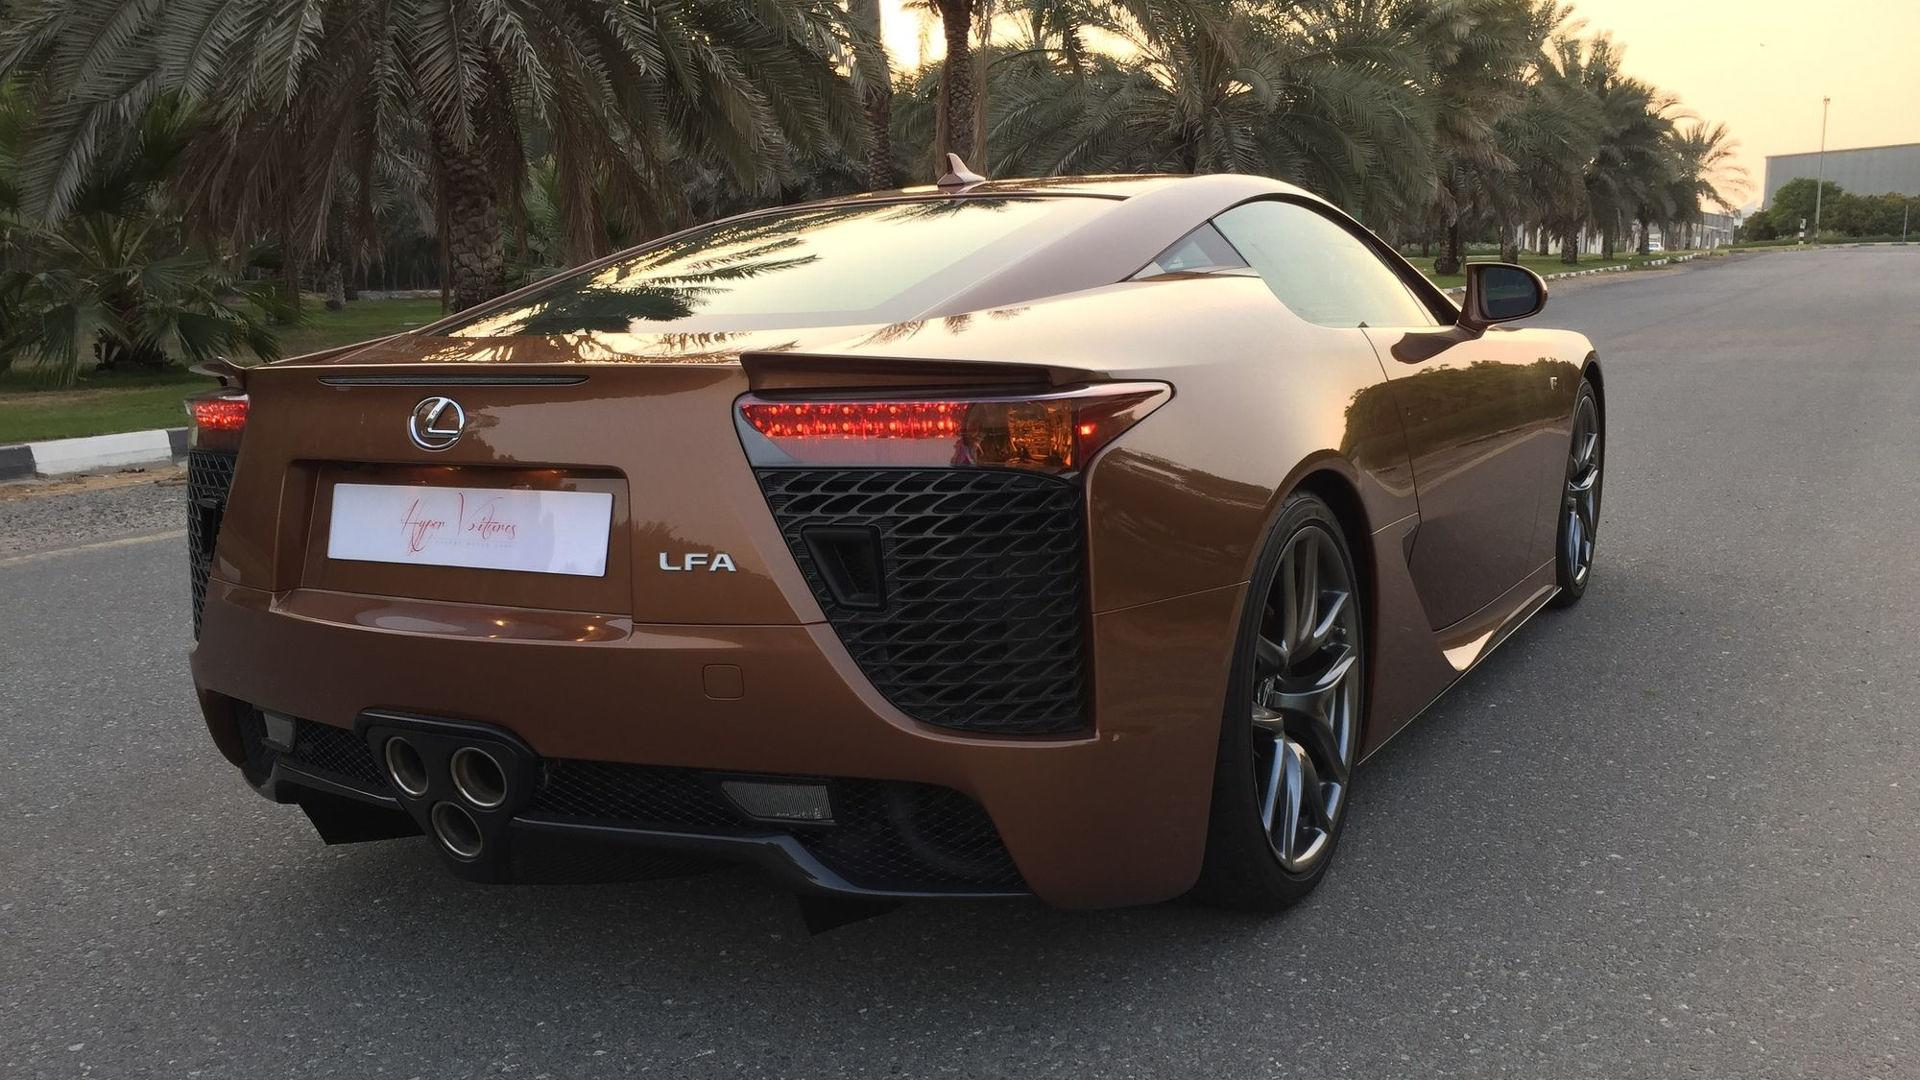 Image result for lexus lfa 2017 wikipedia